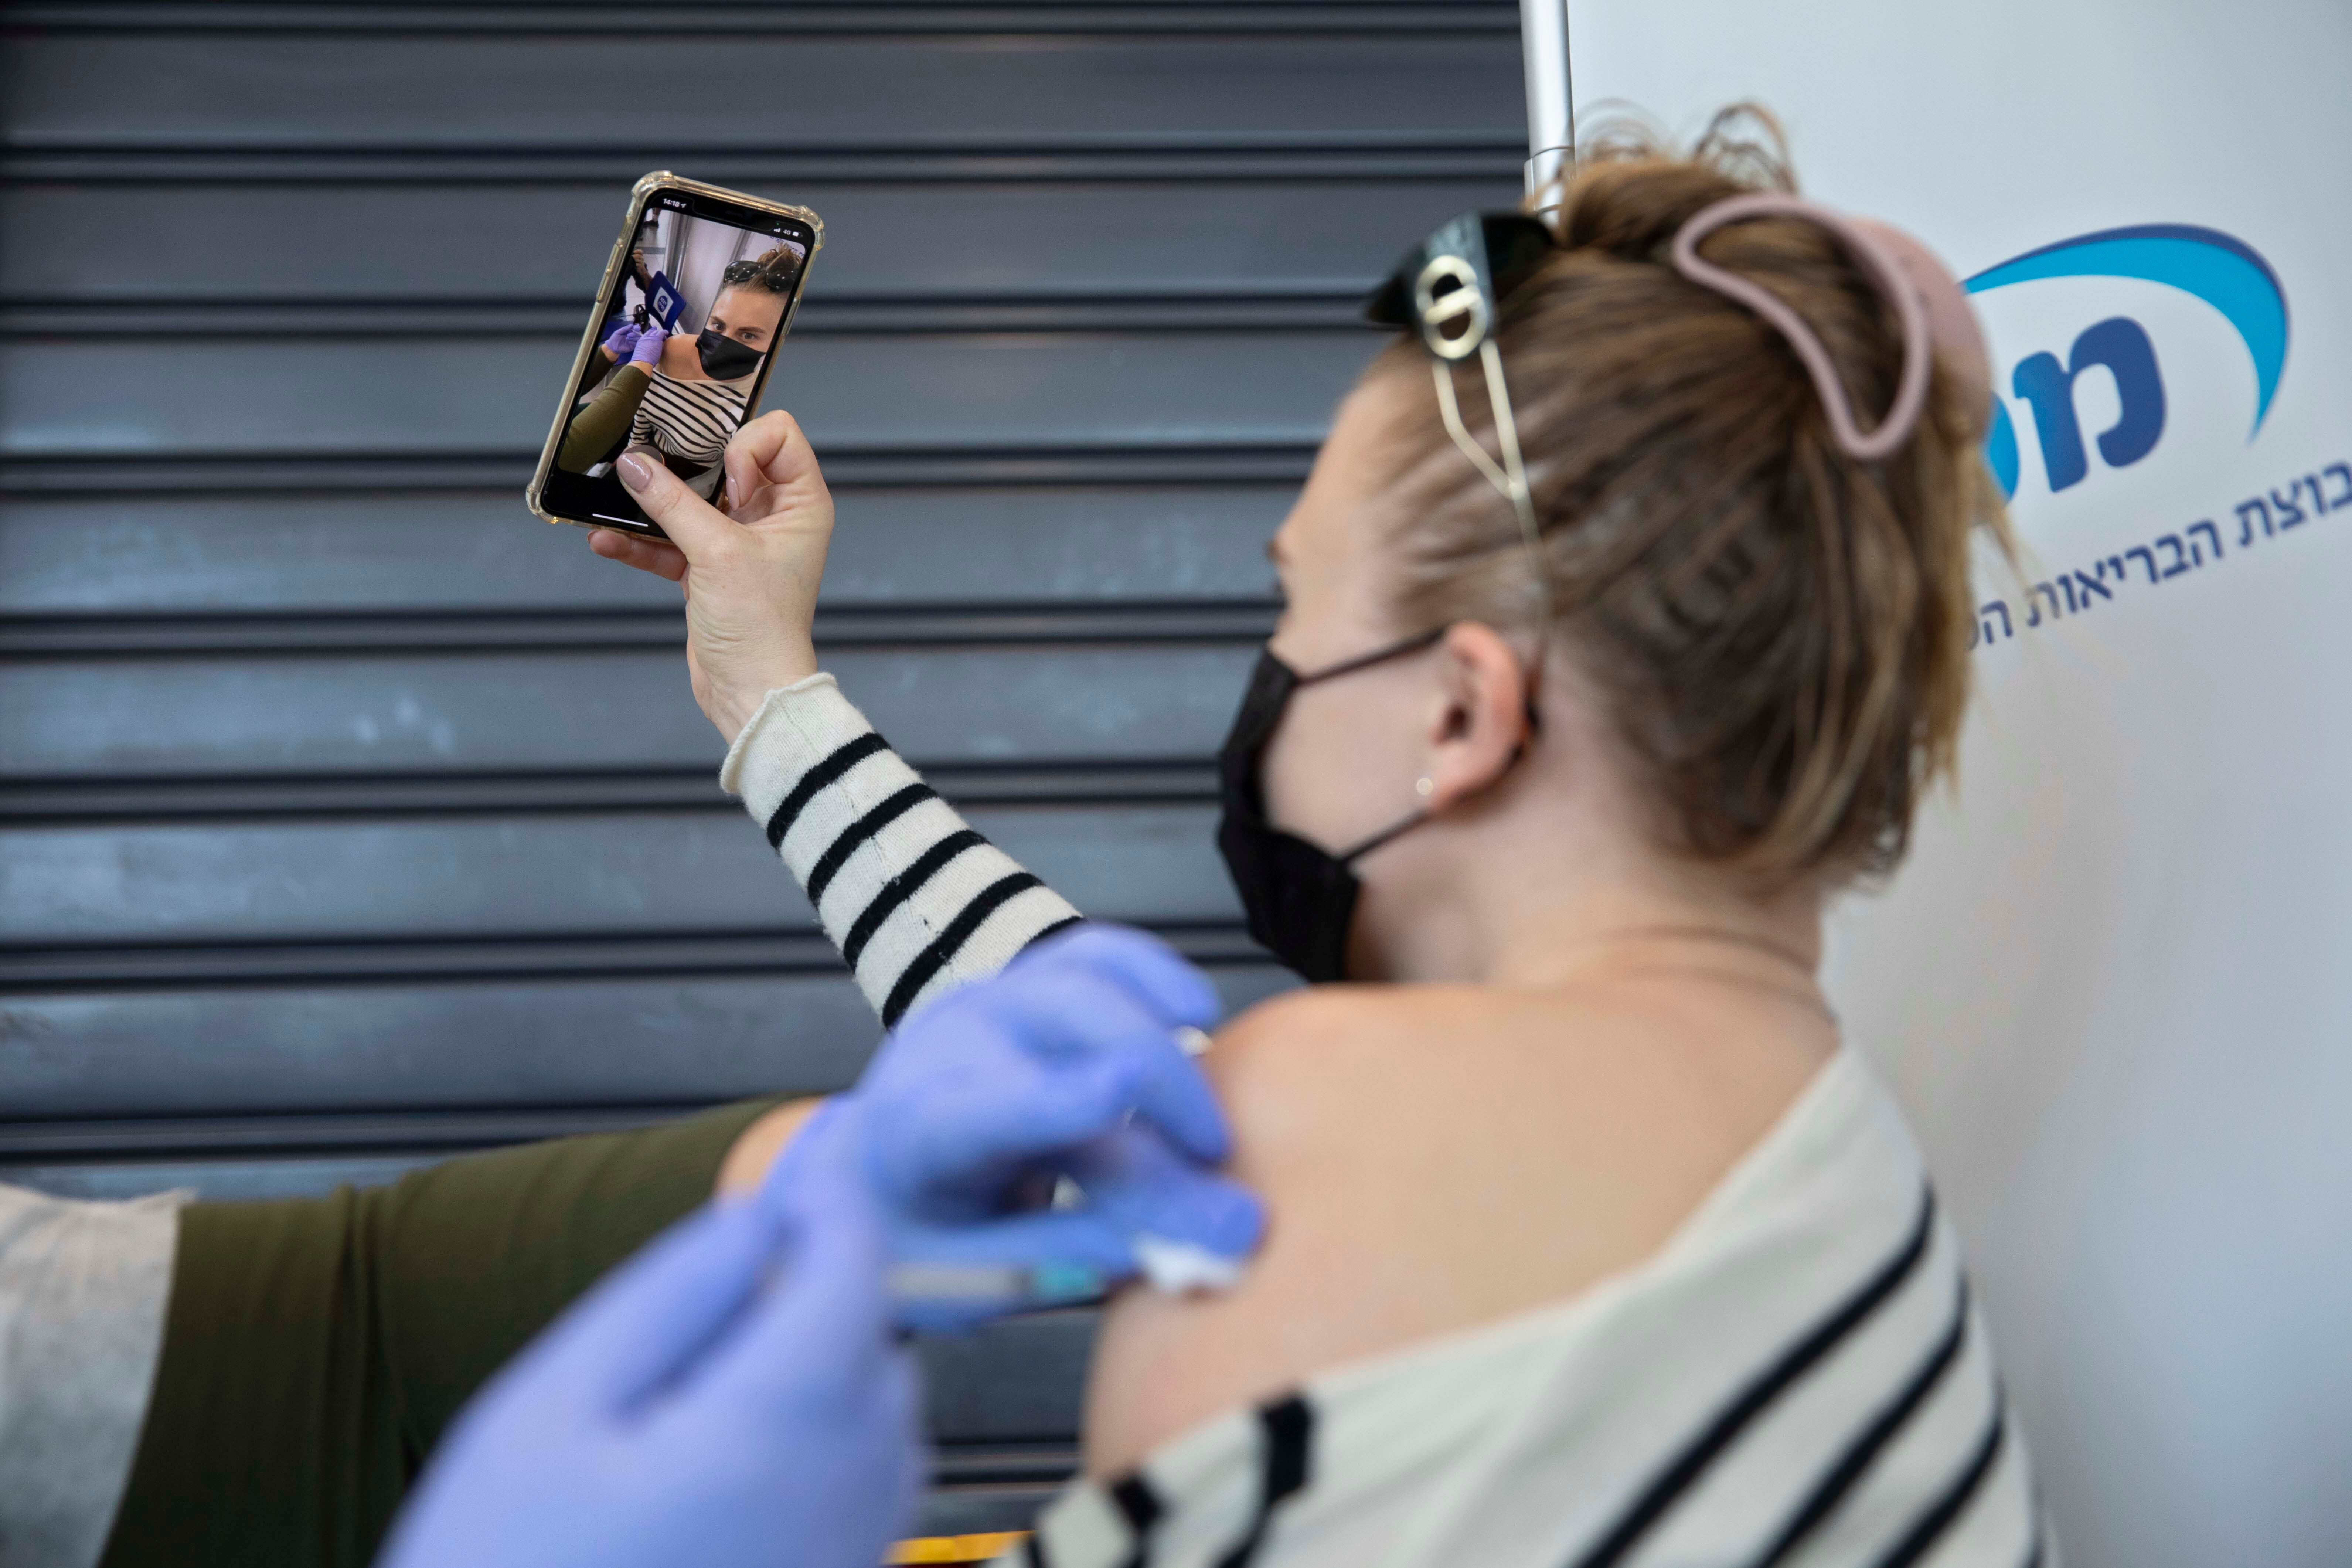 To selfie or not to selfie? Why the joy of getting vaccinated is drawing backlash 2